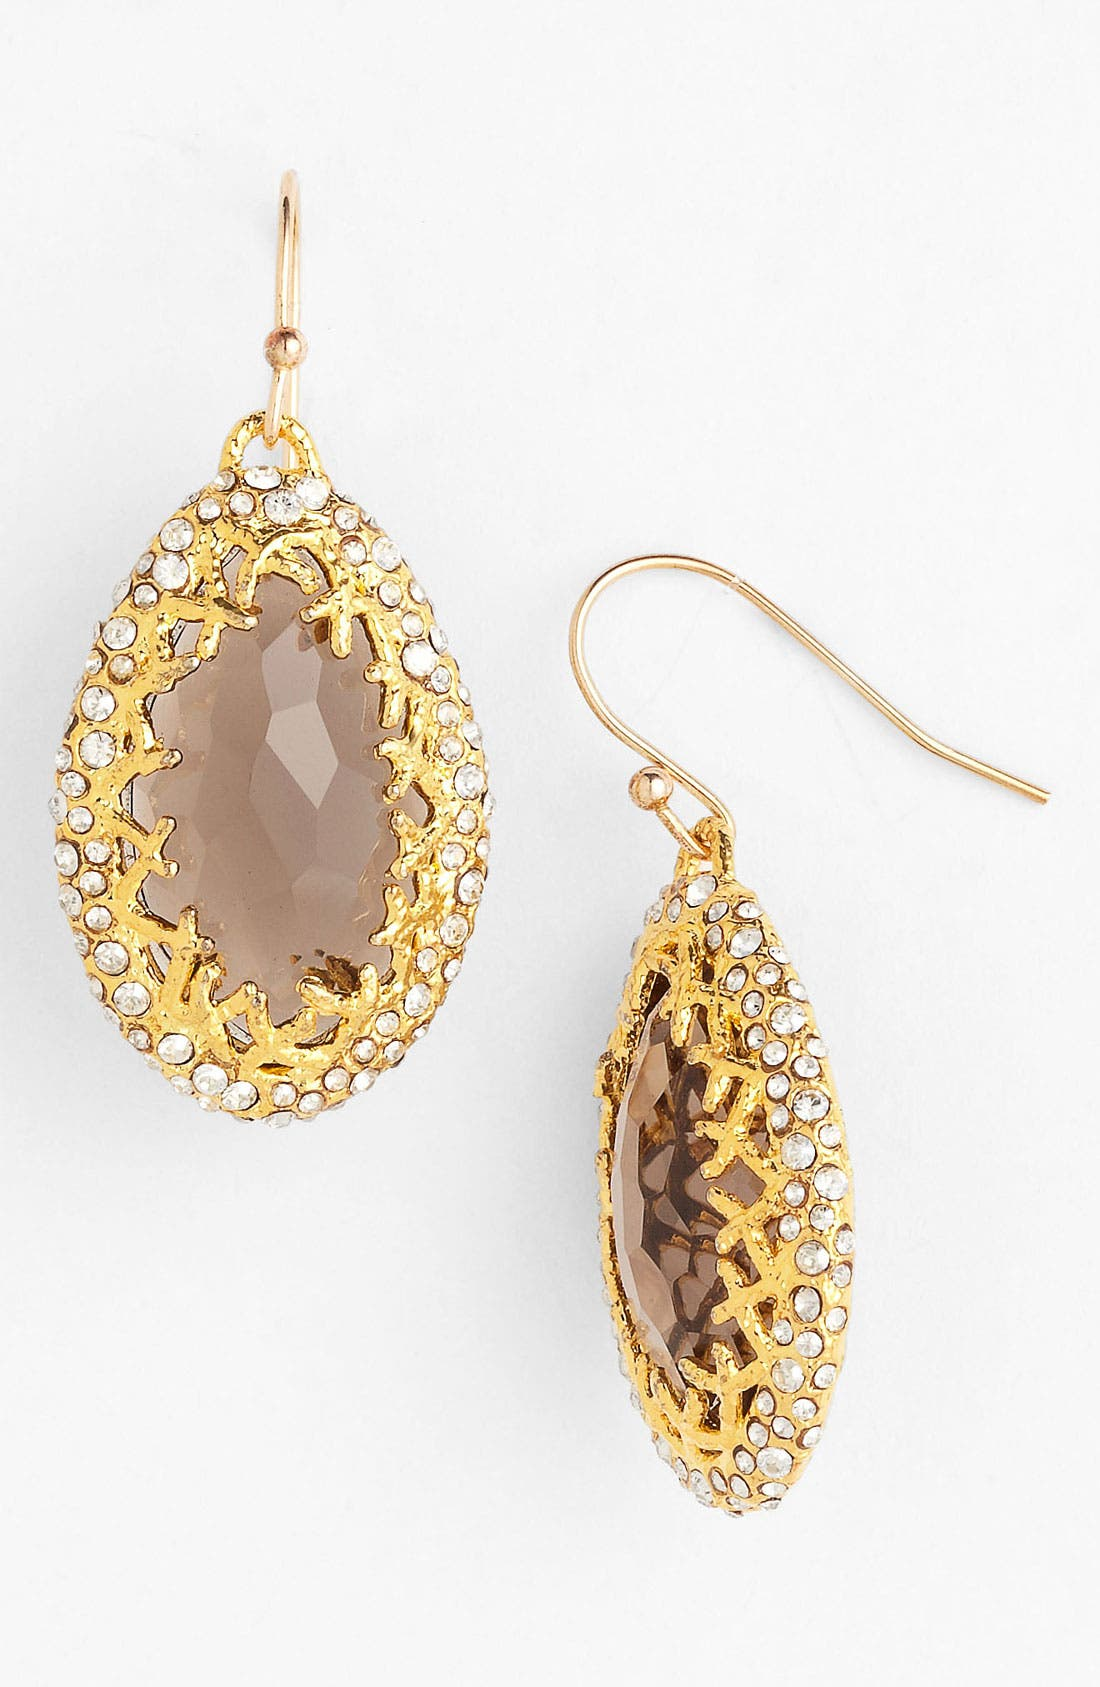 Alternate Image 1 Selected - Alexis Bittar 'Elements' Drop Earrings (Nordstrom Exclusive)